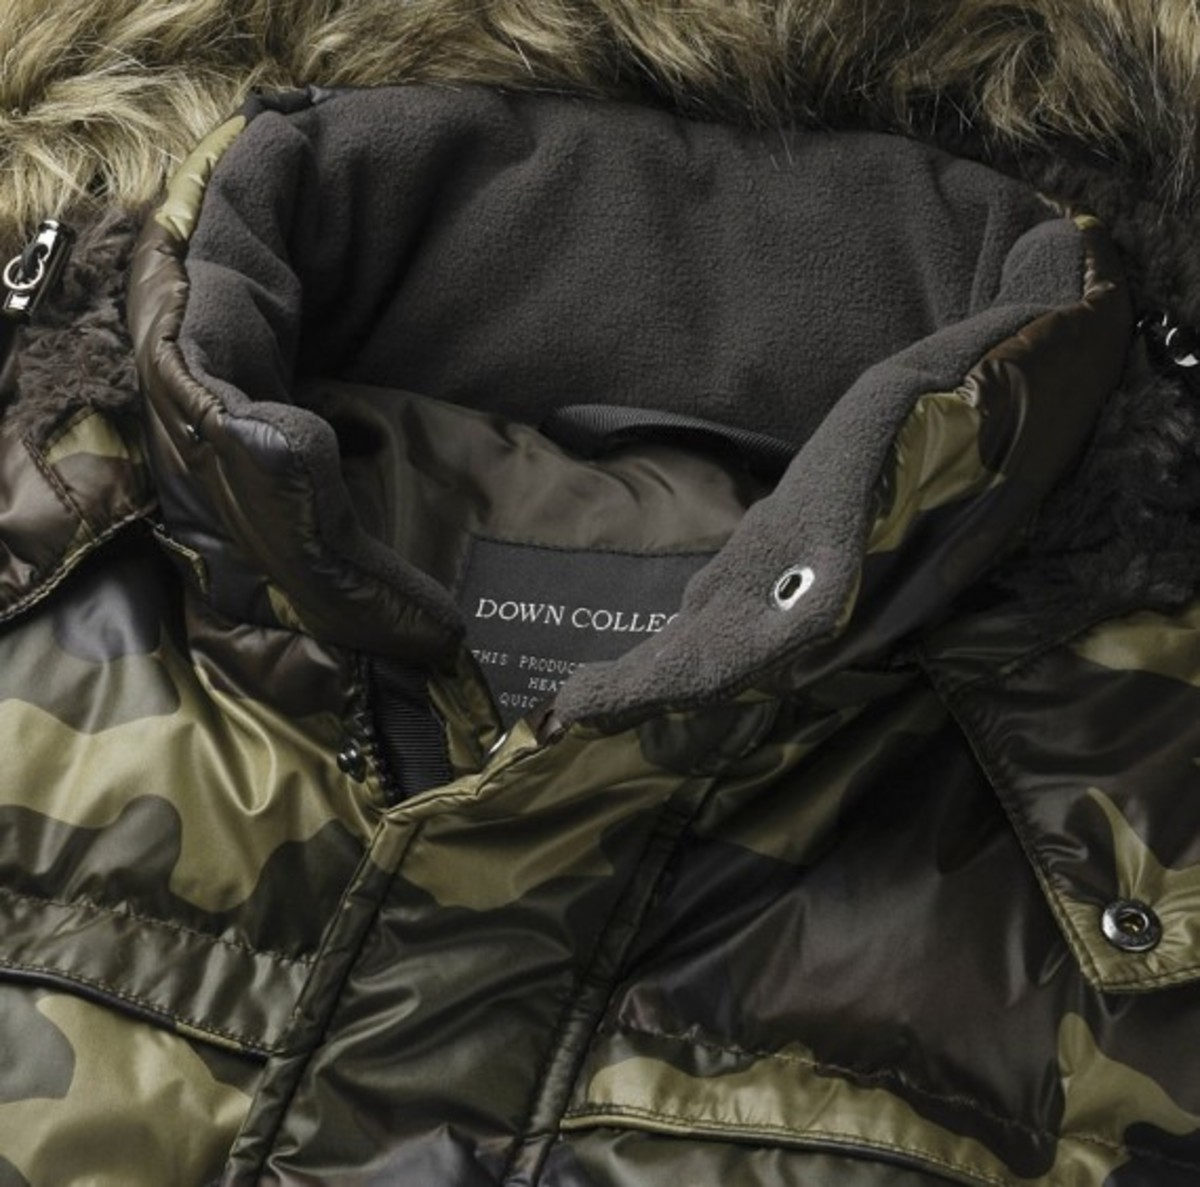 uniqlo-camoflauge-down-jacket-01